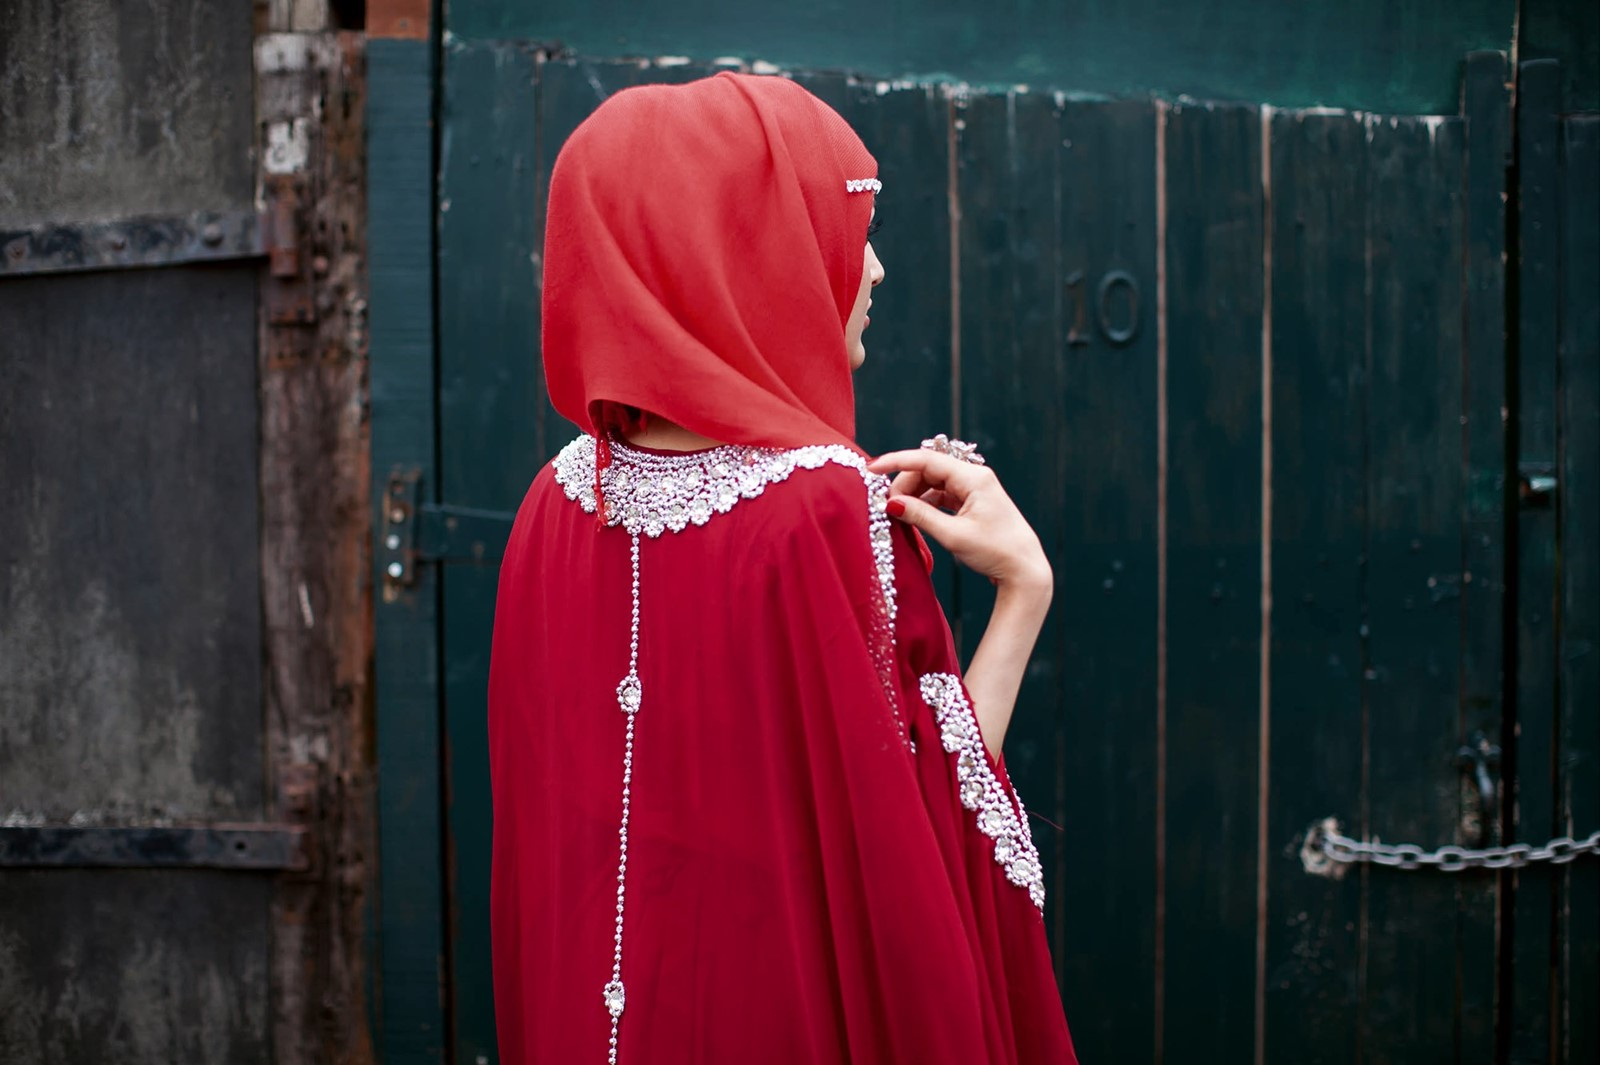 Red hijab, red dress and bling © Mahtab Hussain ta